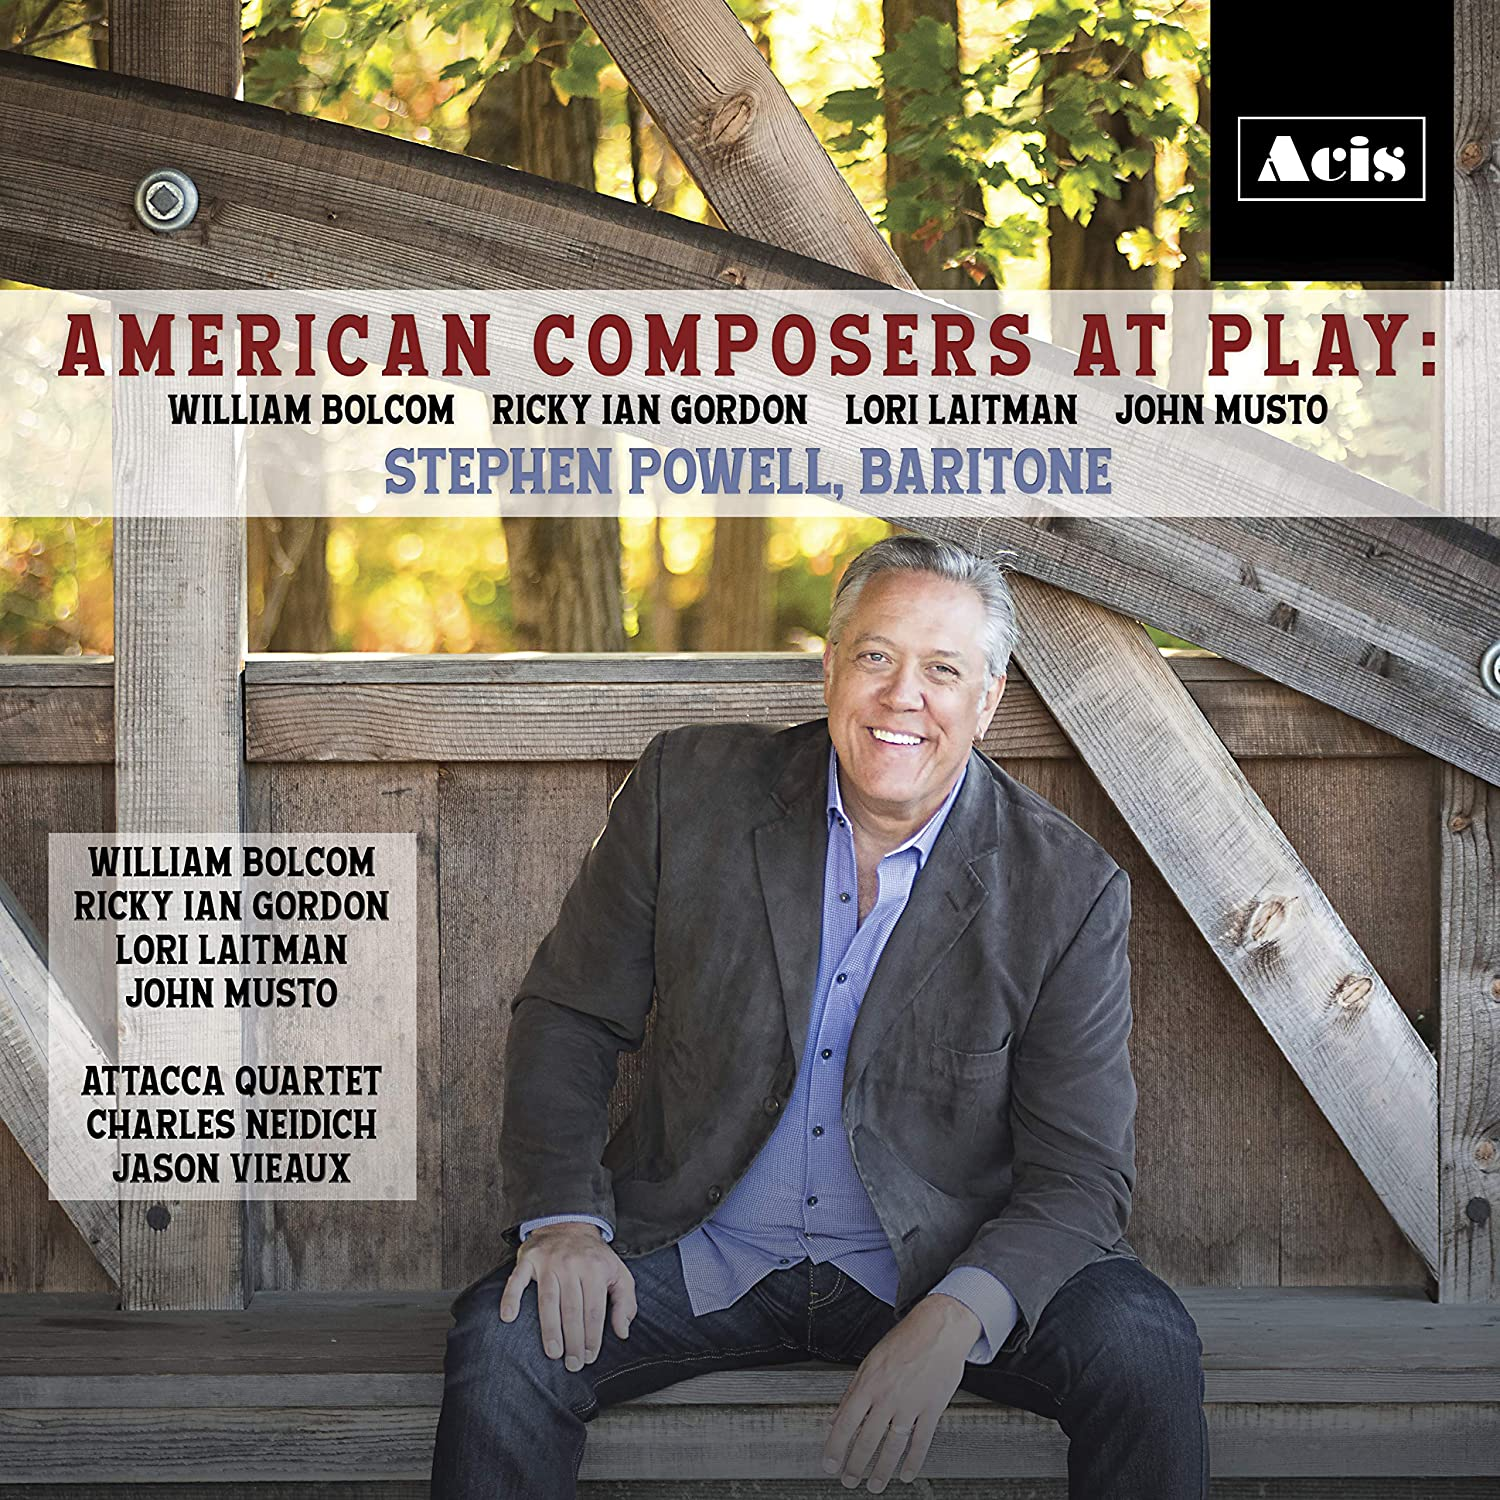 Review of American Composers at Play